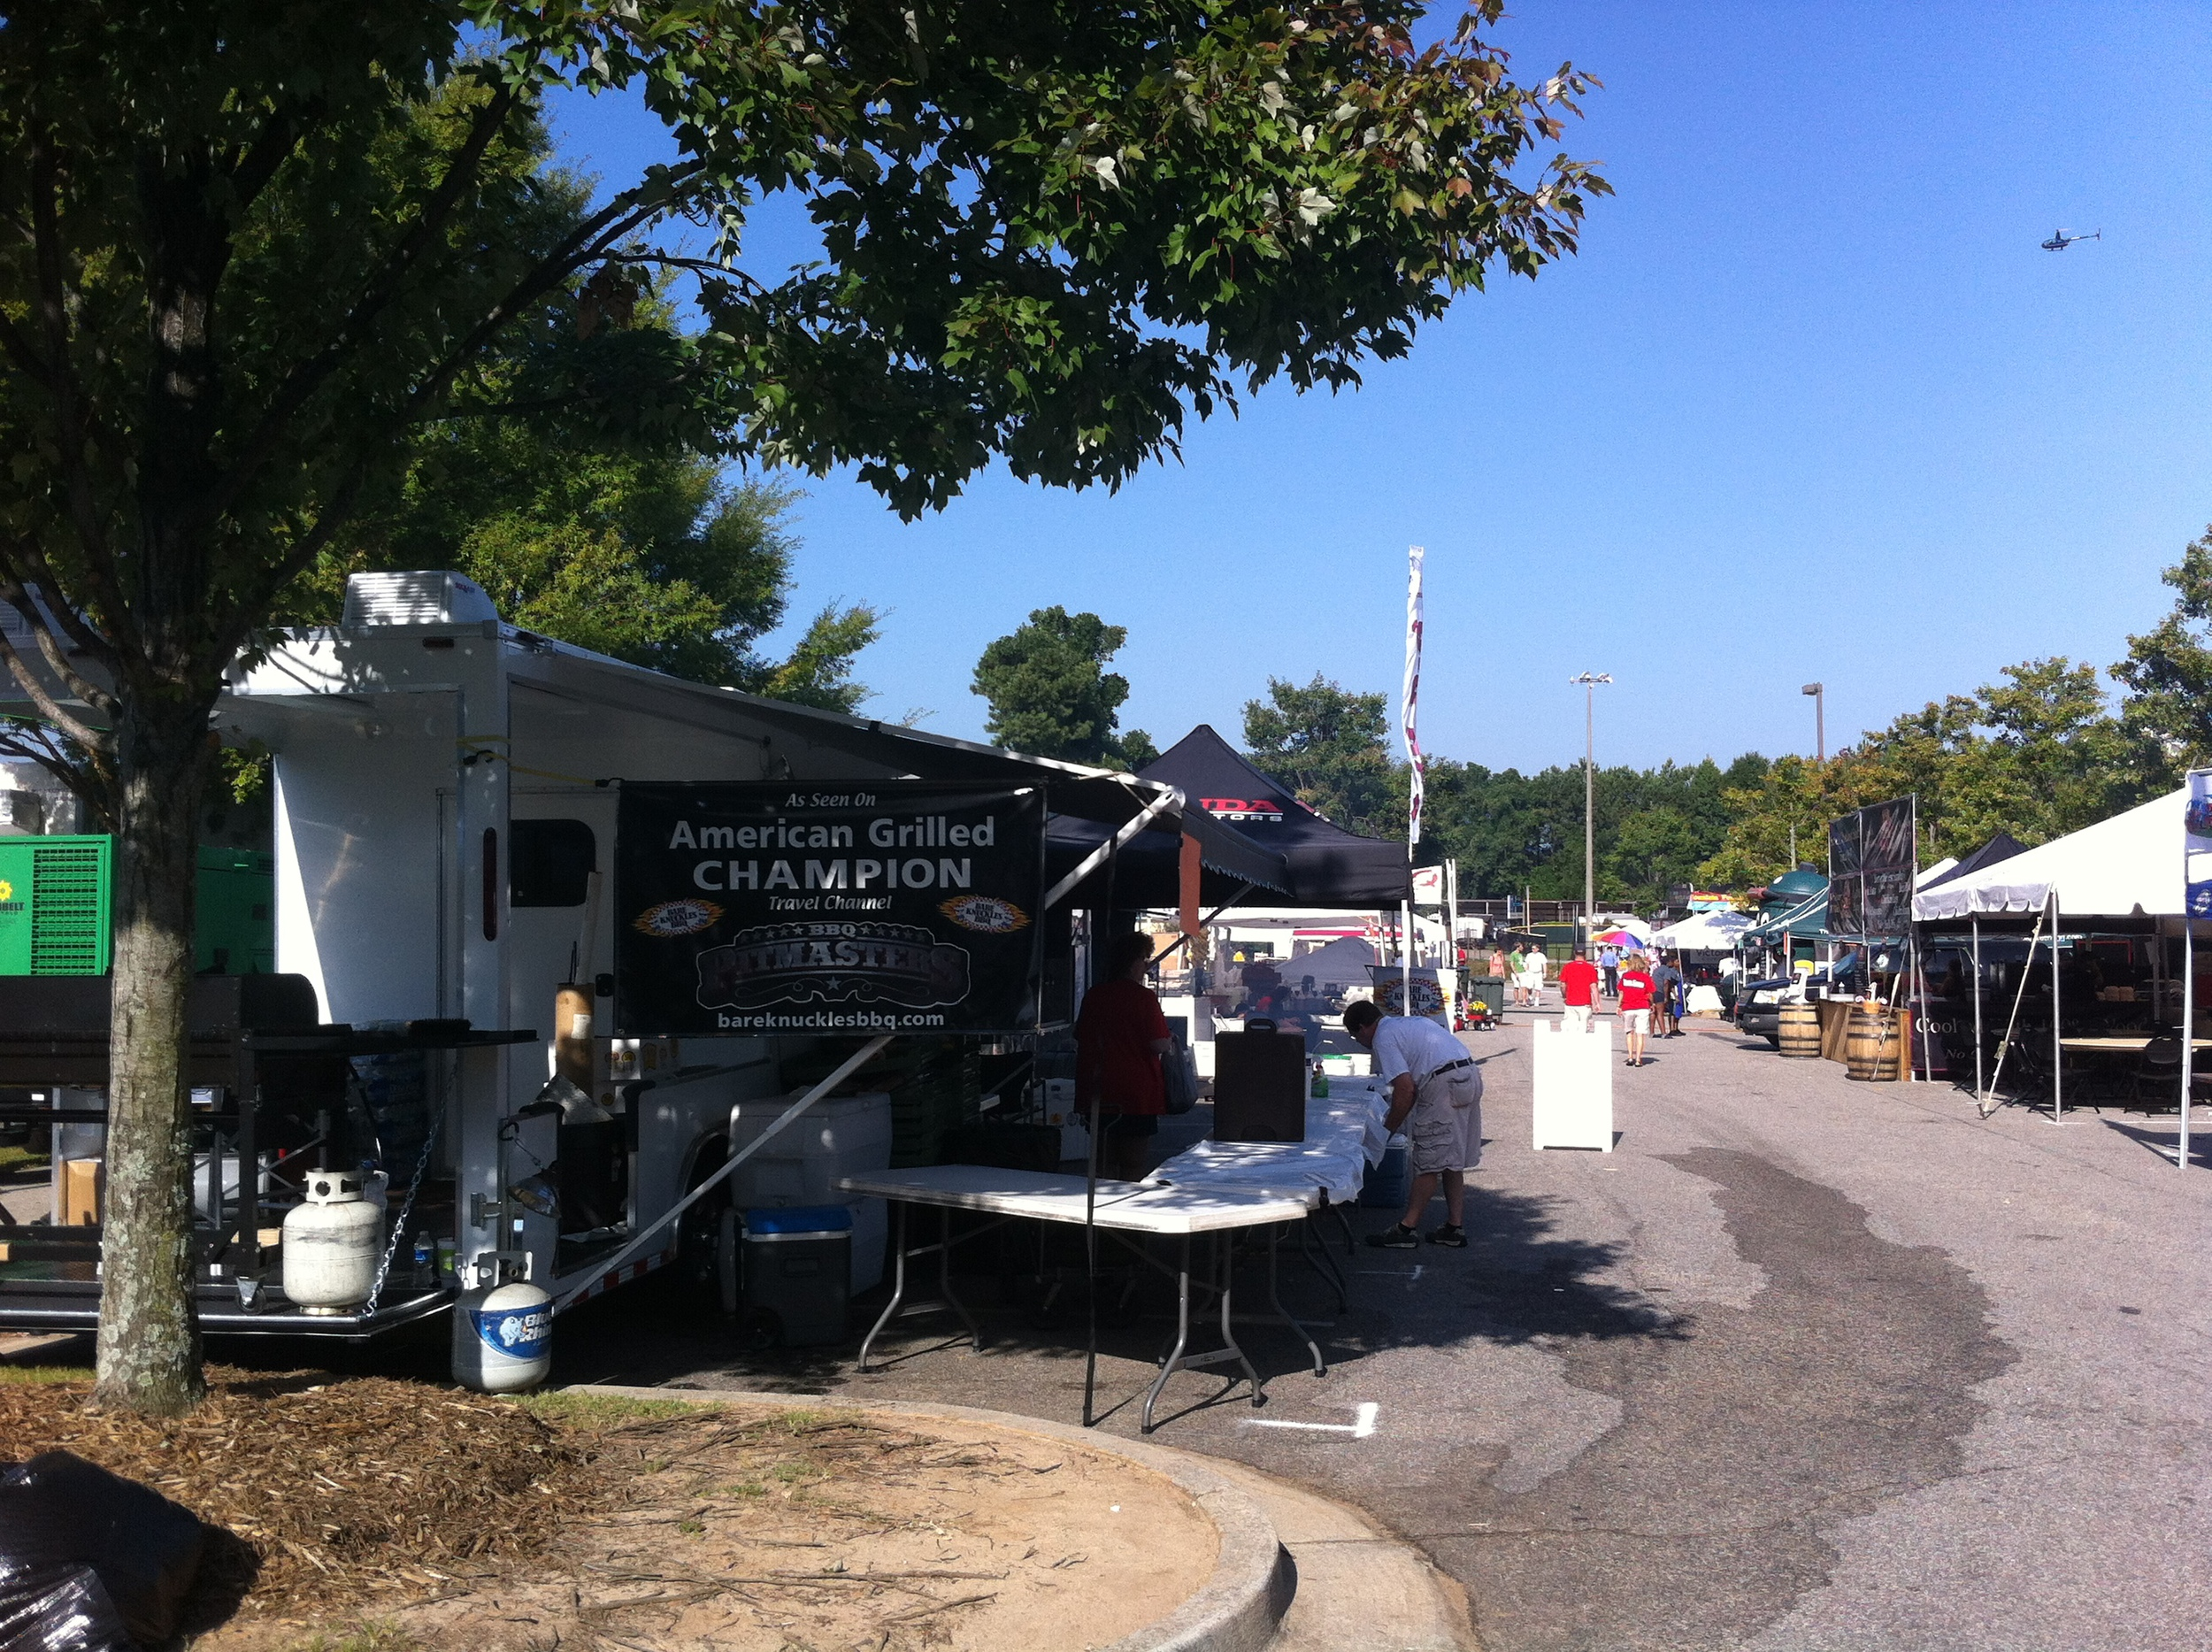 My tent was set up right across from one of the PitMaster Champions BBQ vendors...almost time to open!